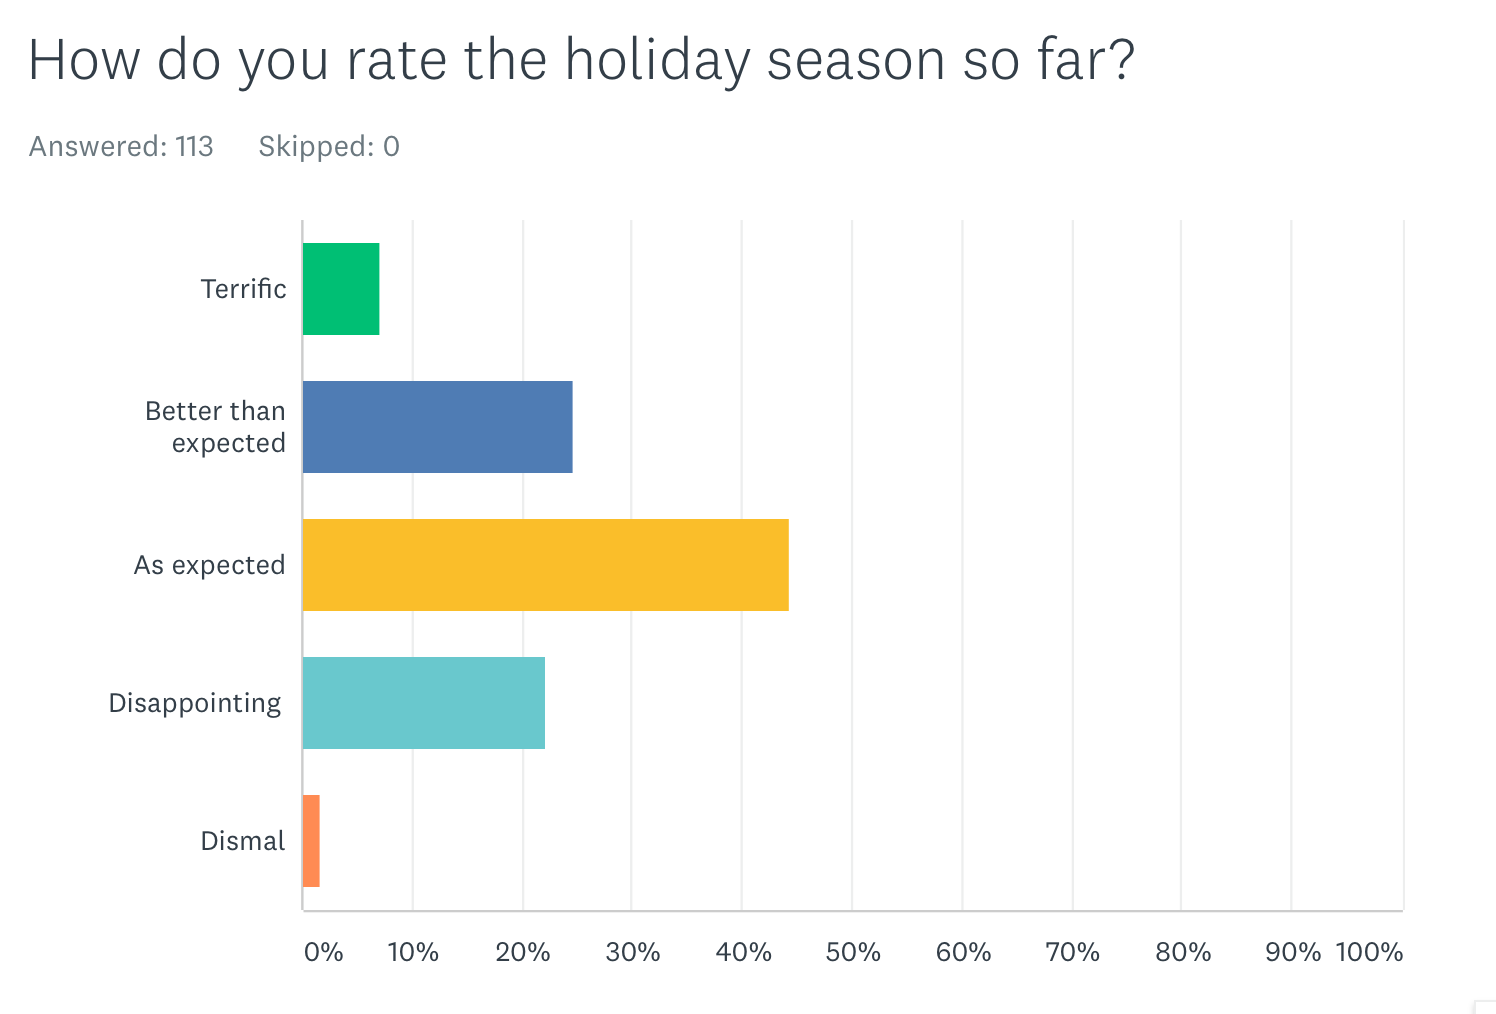 Sales Remain Strong, But Jewelers Moderate Expectations a Bit for 2019 Holiday Season